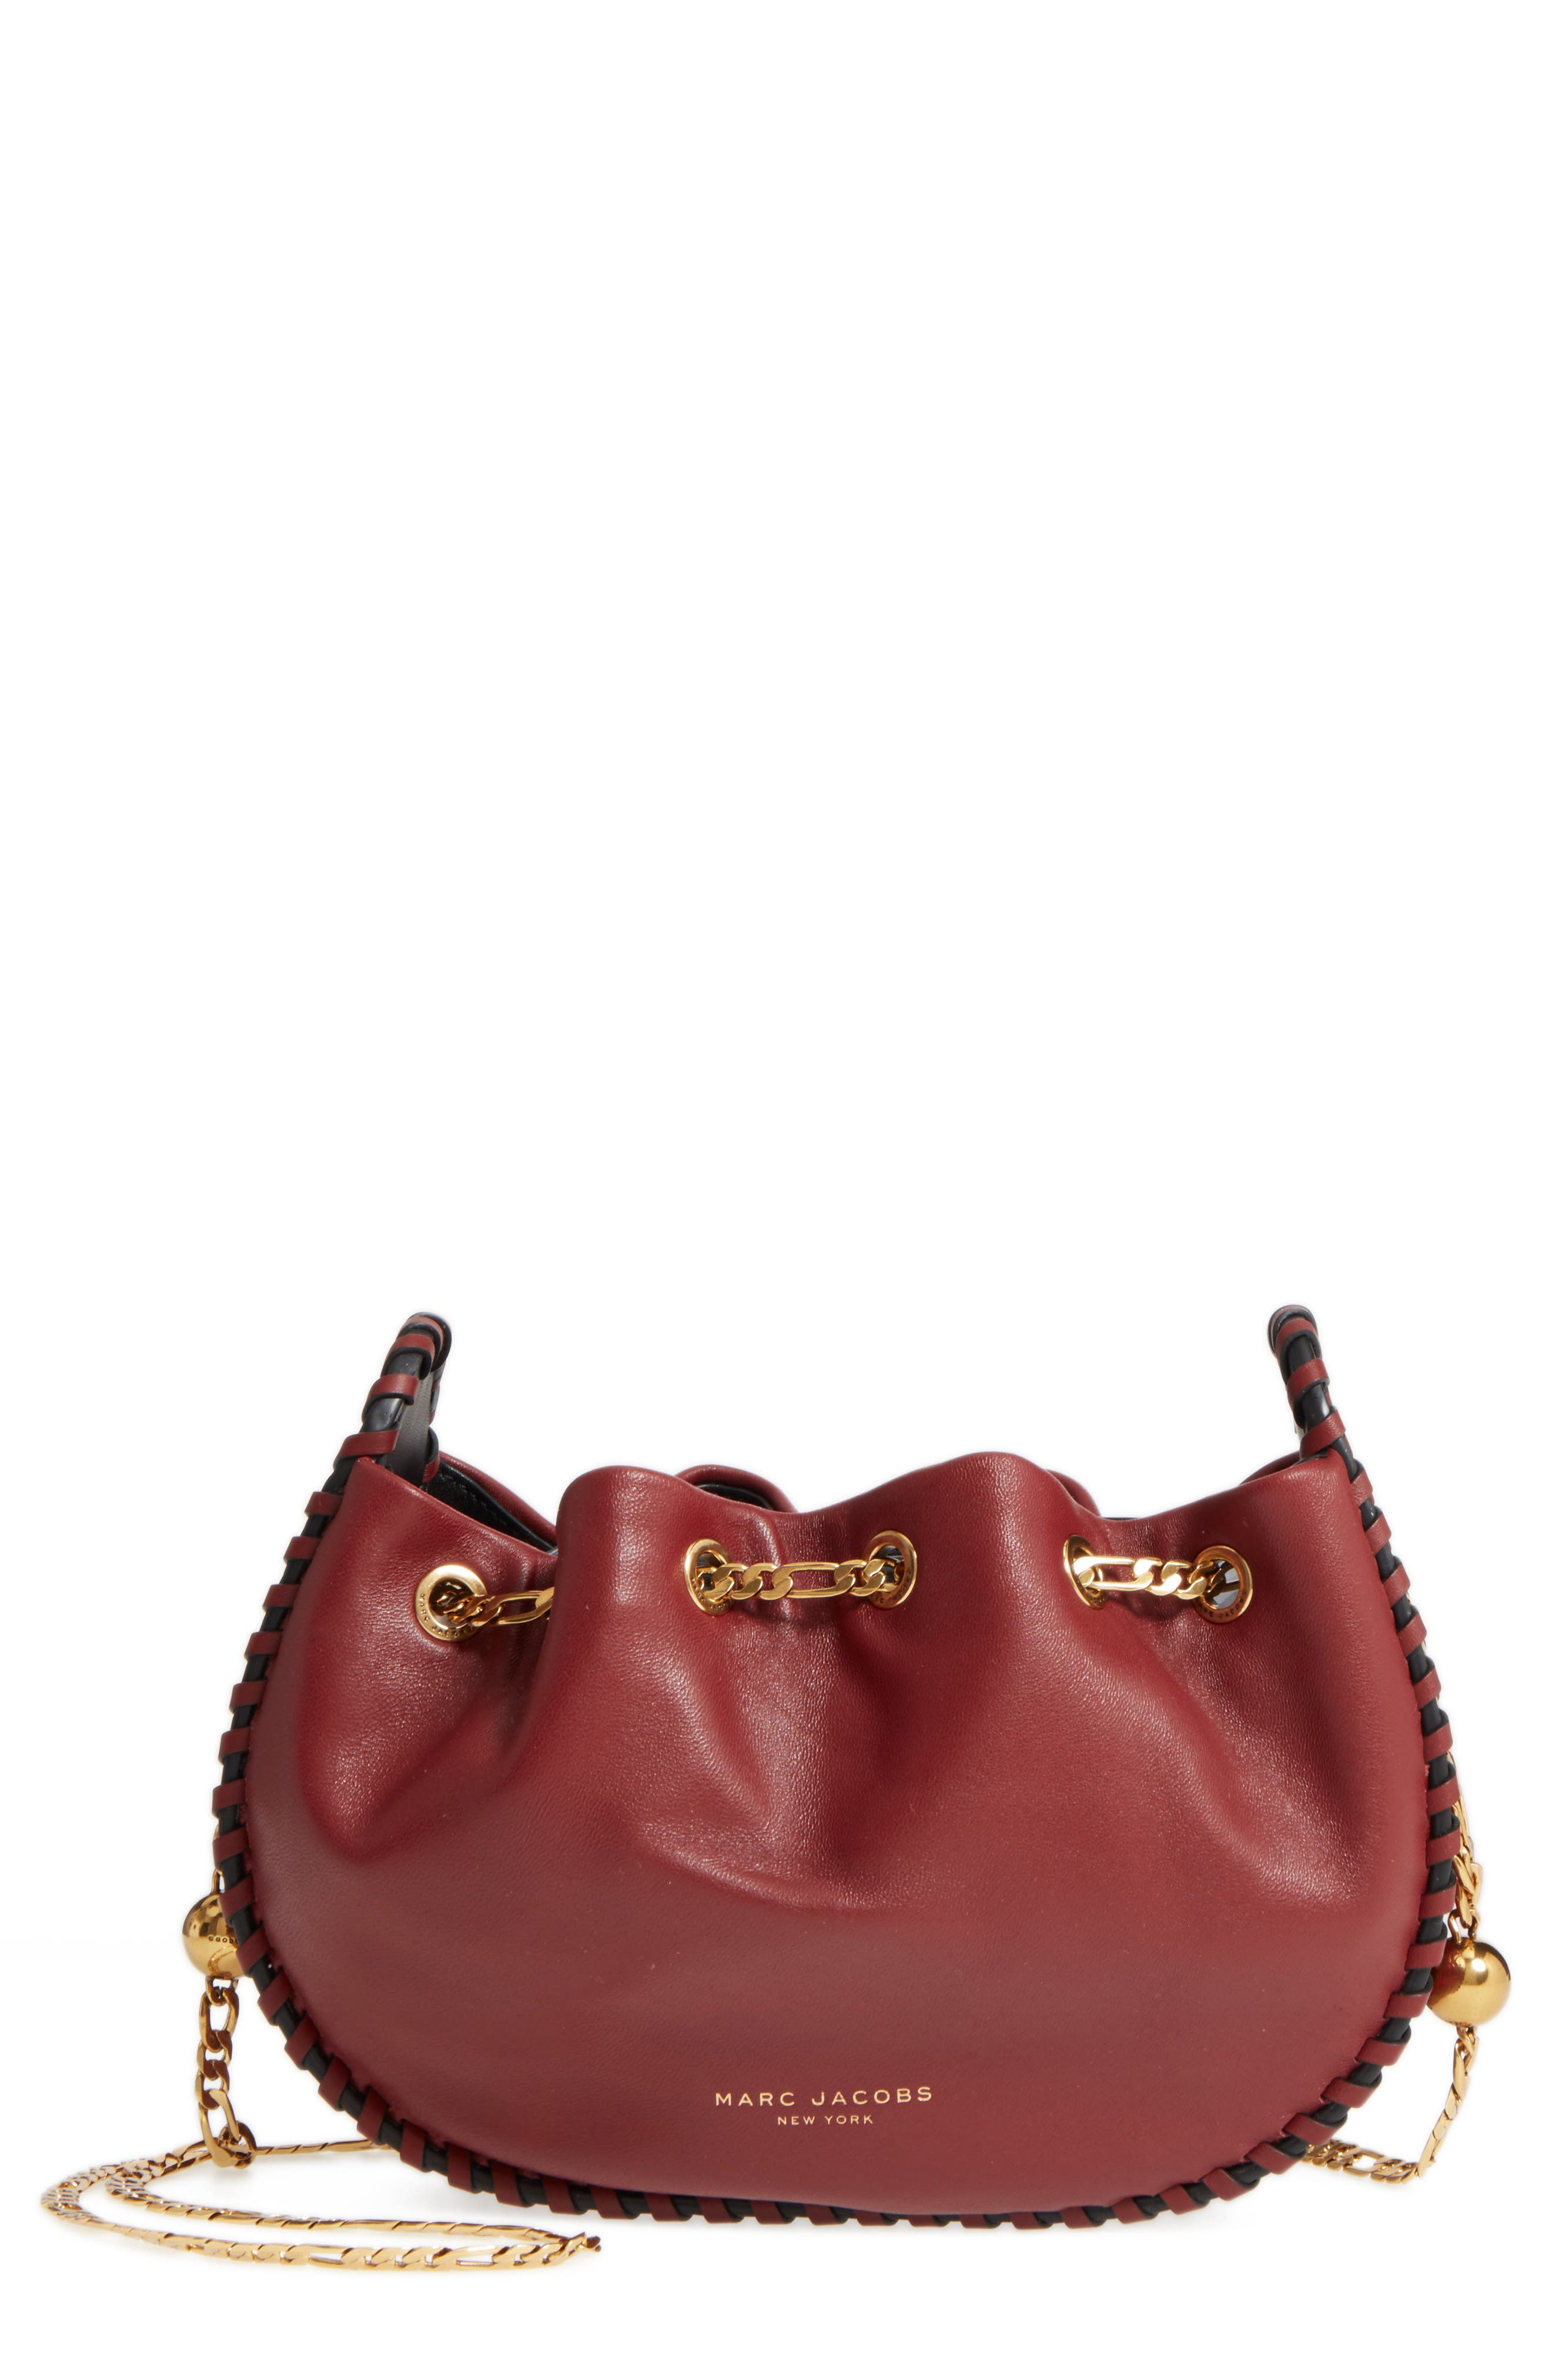 MARC JACOBS Sway Party Leather Crossbody Bag